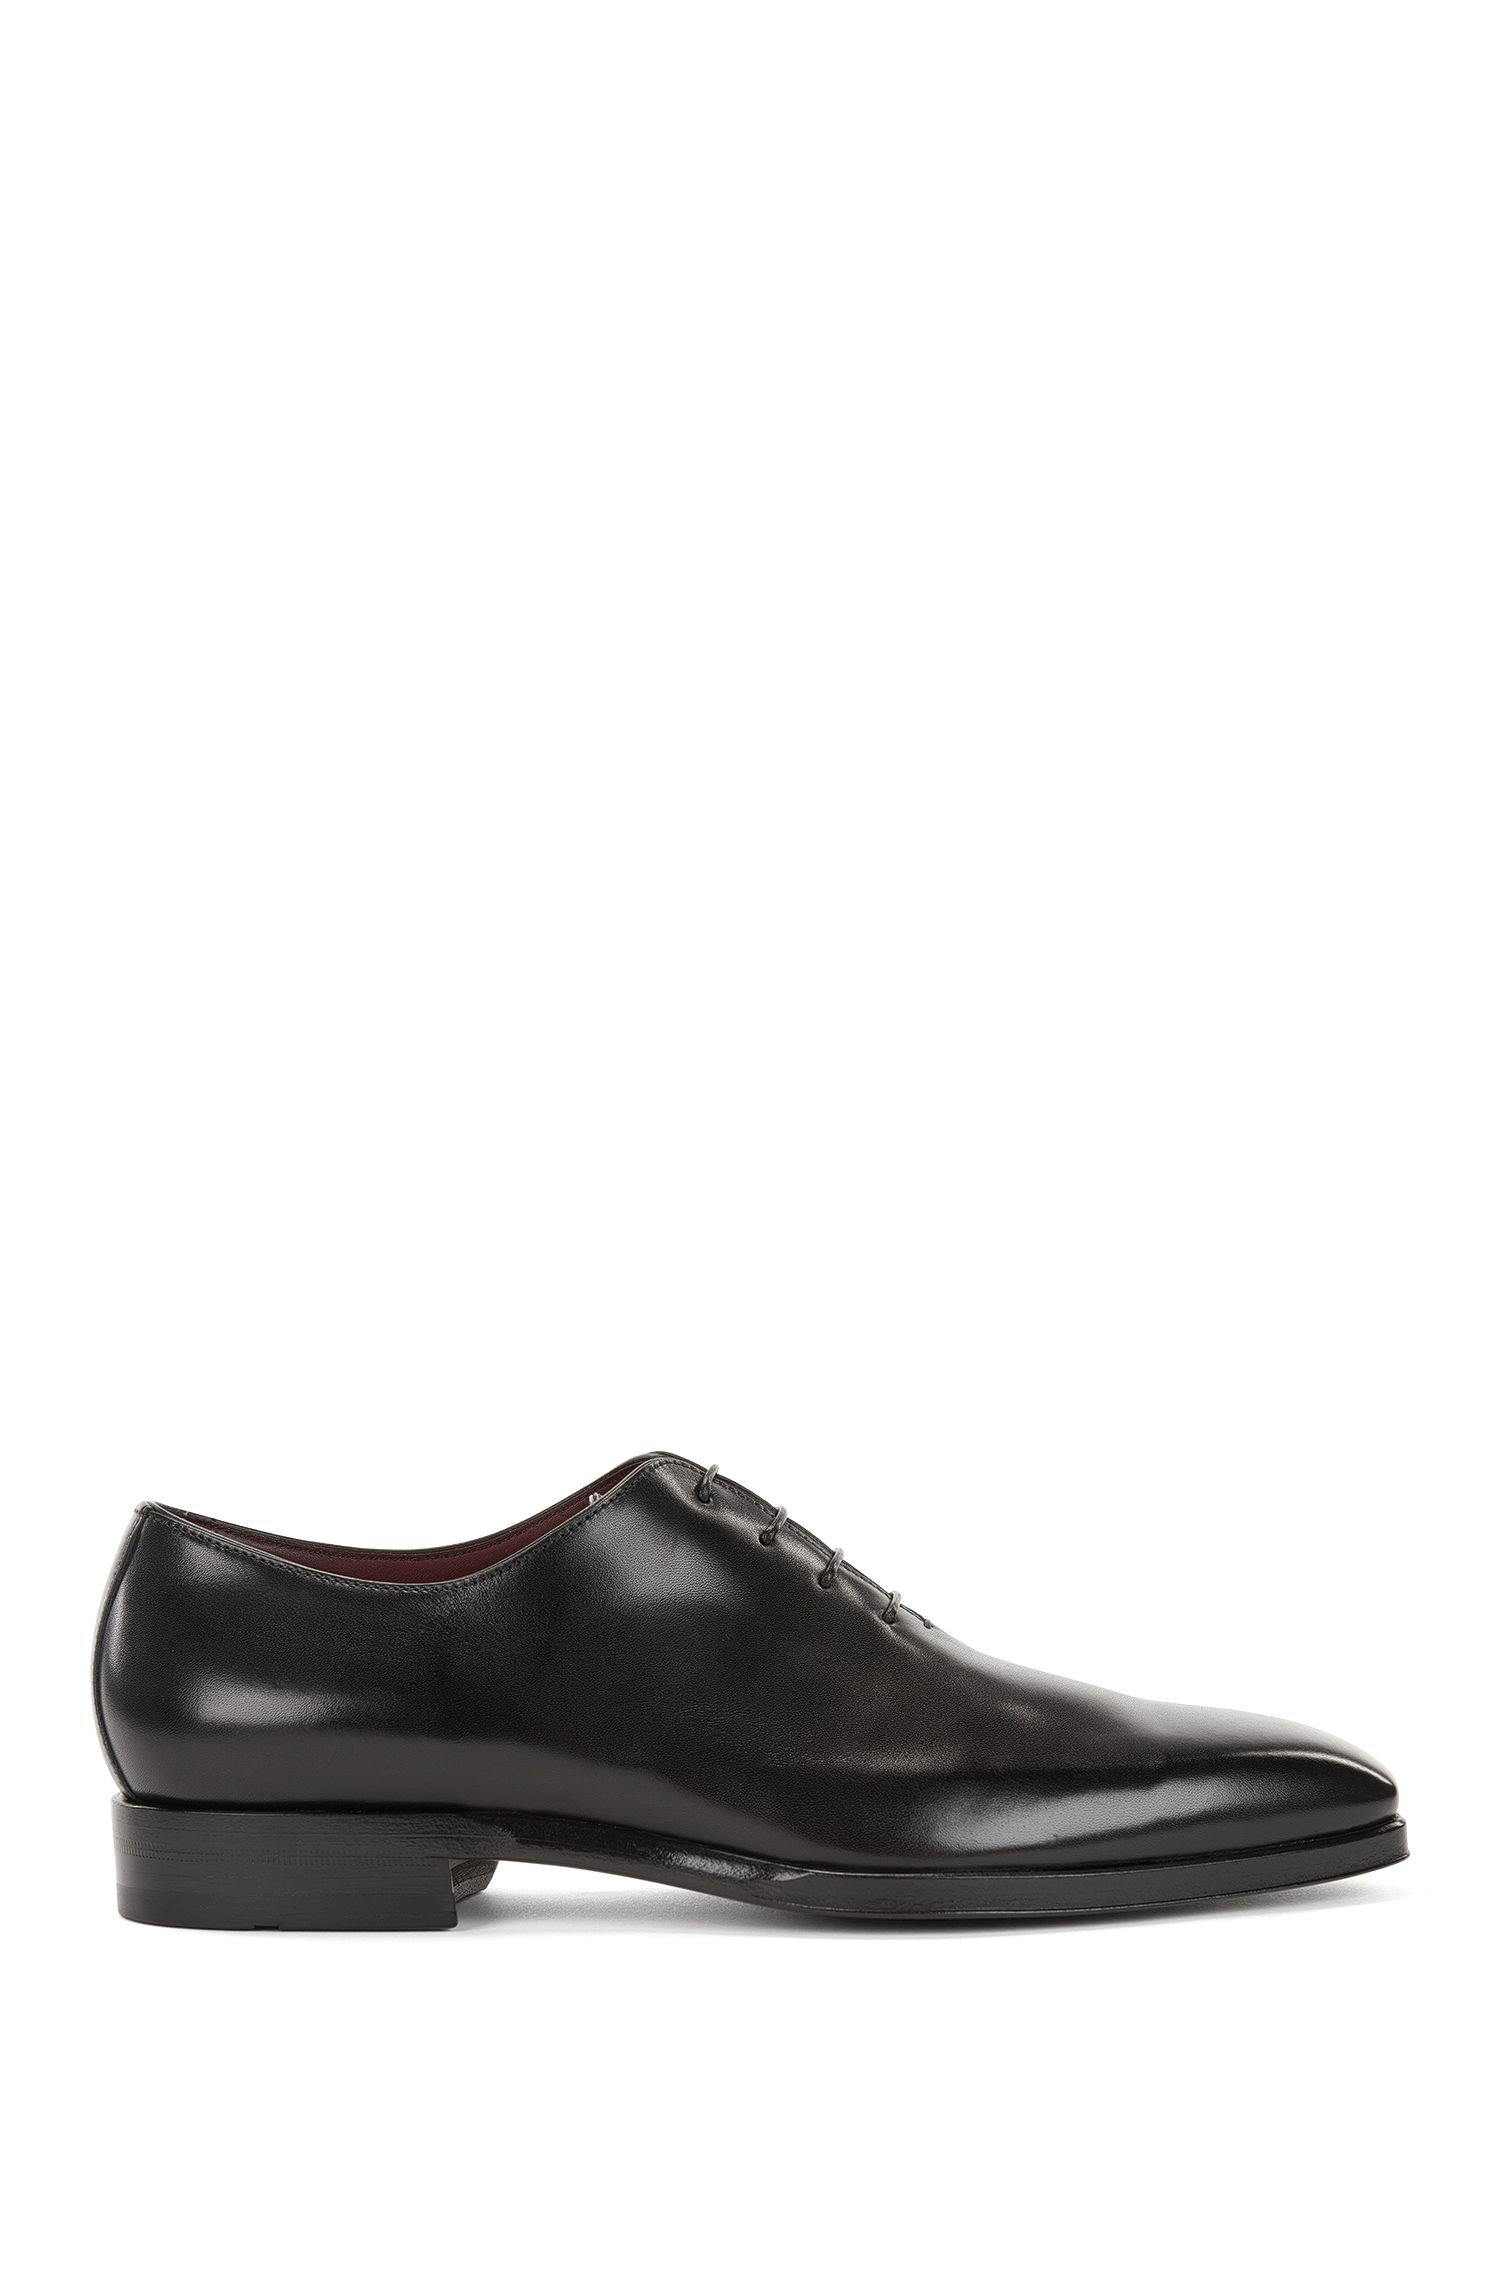 Scarpe Oxford in pelle brunita